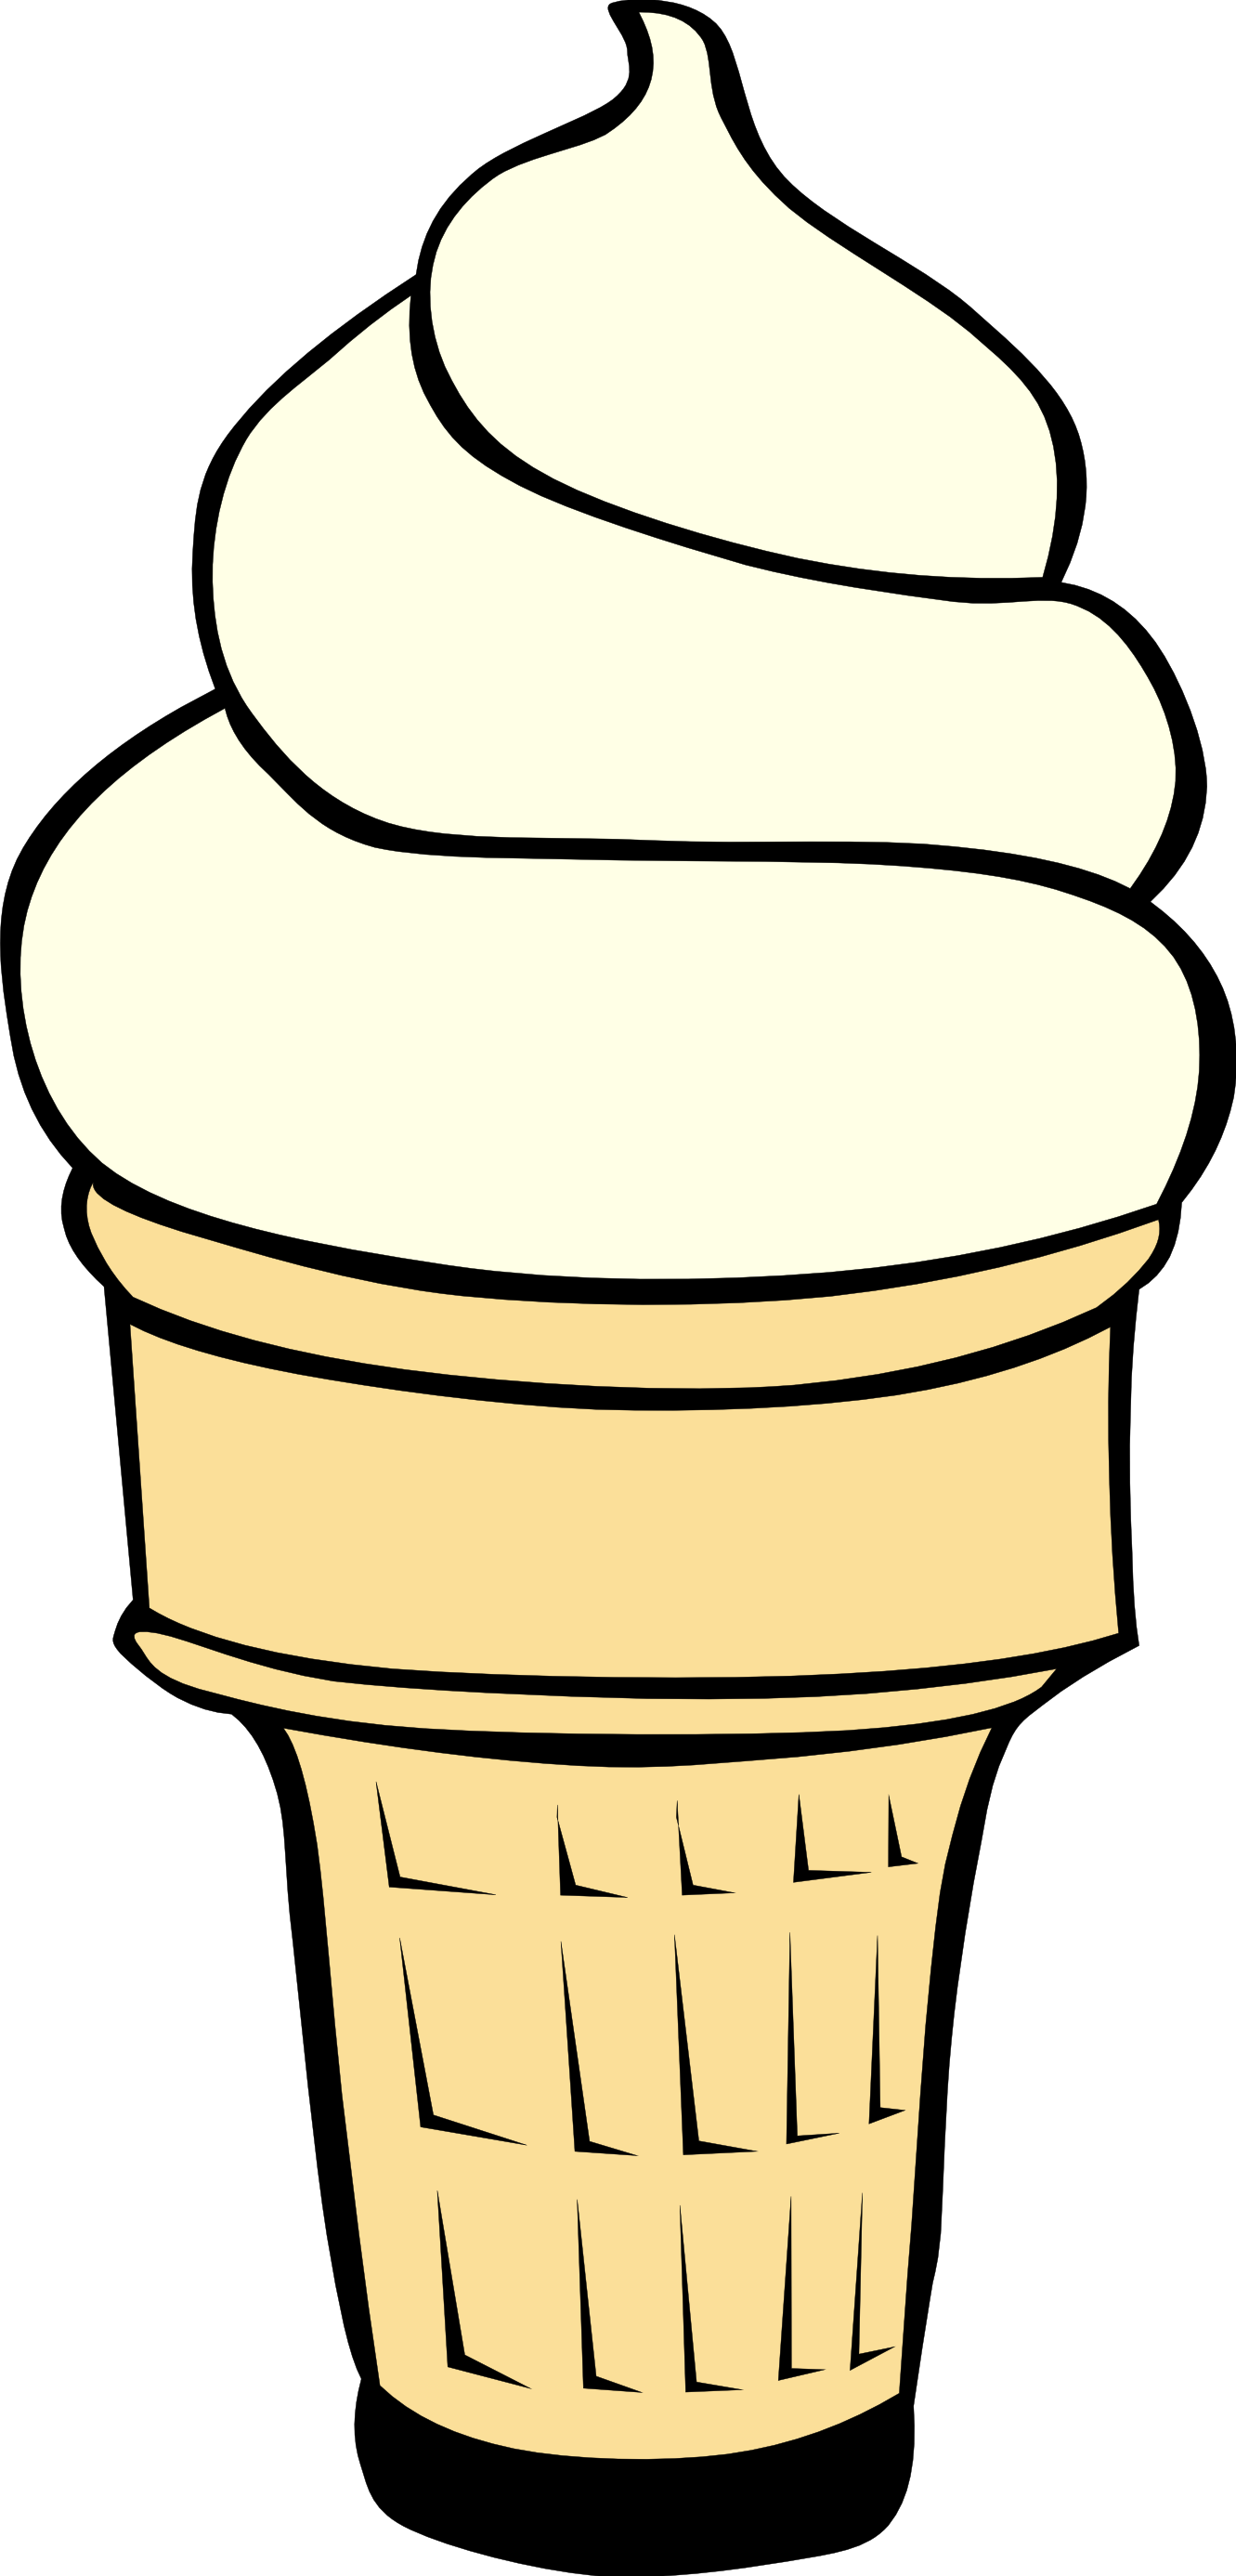 Amd clipart ice cream Clipart Black Ice White cream